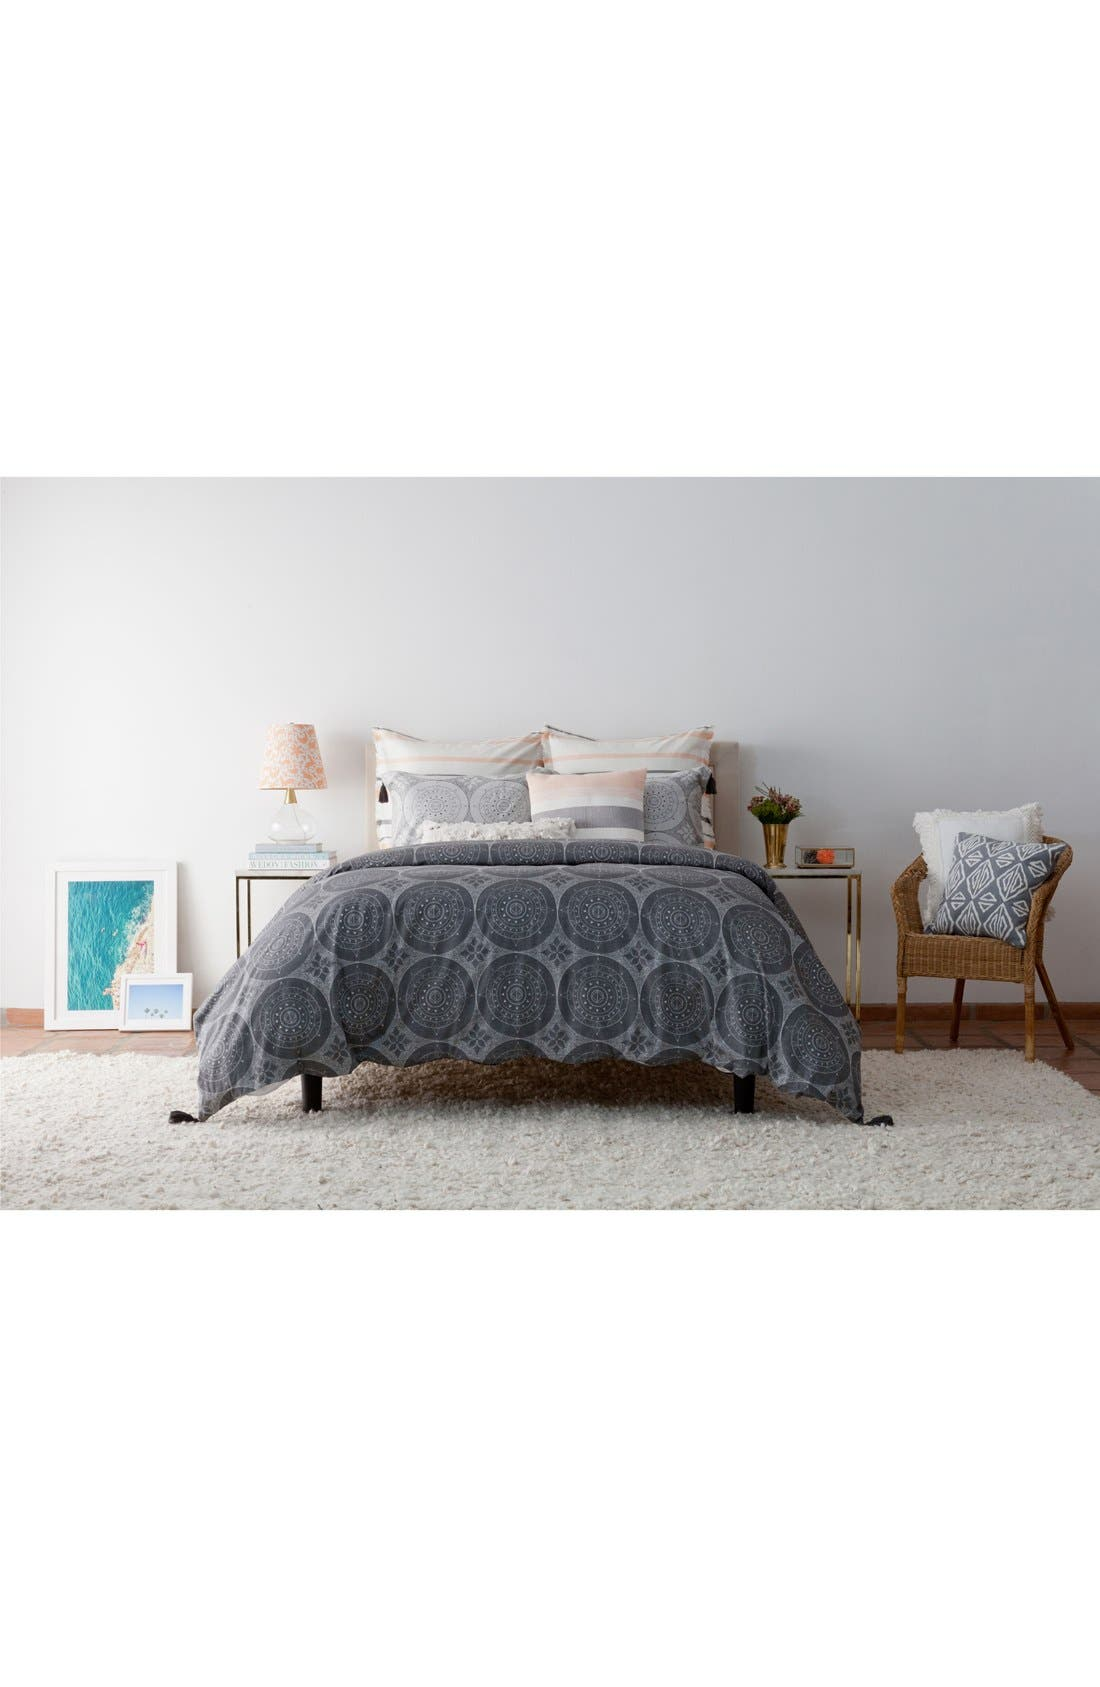 Dotted Medallion Duvet Cover,                             Alternate thumbnail 3, color,                             020